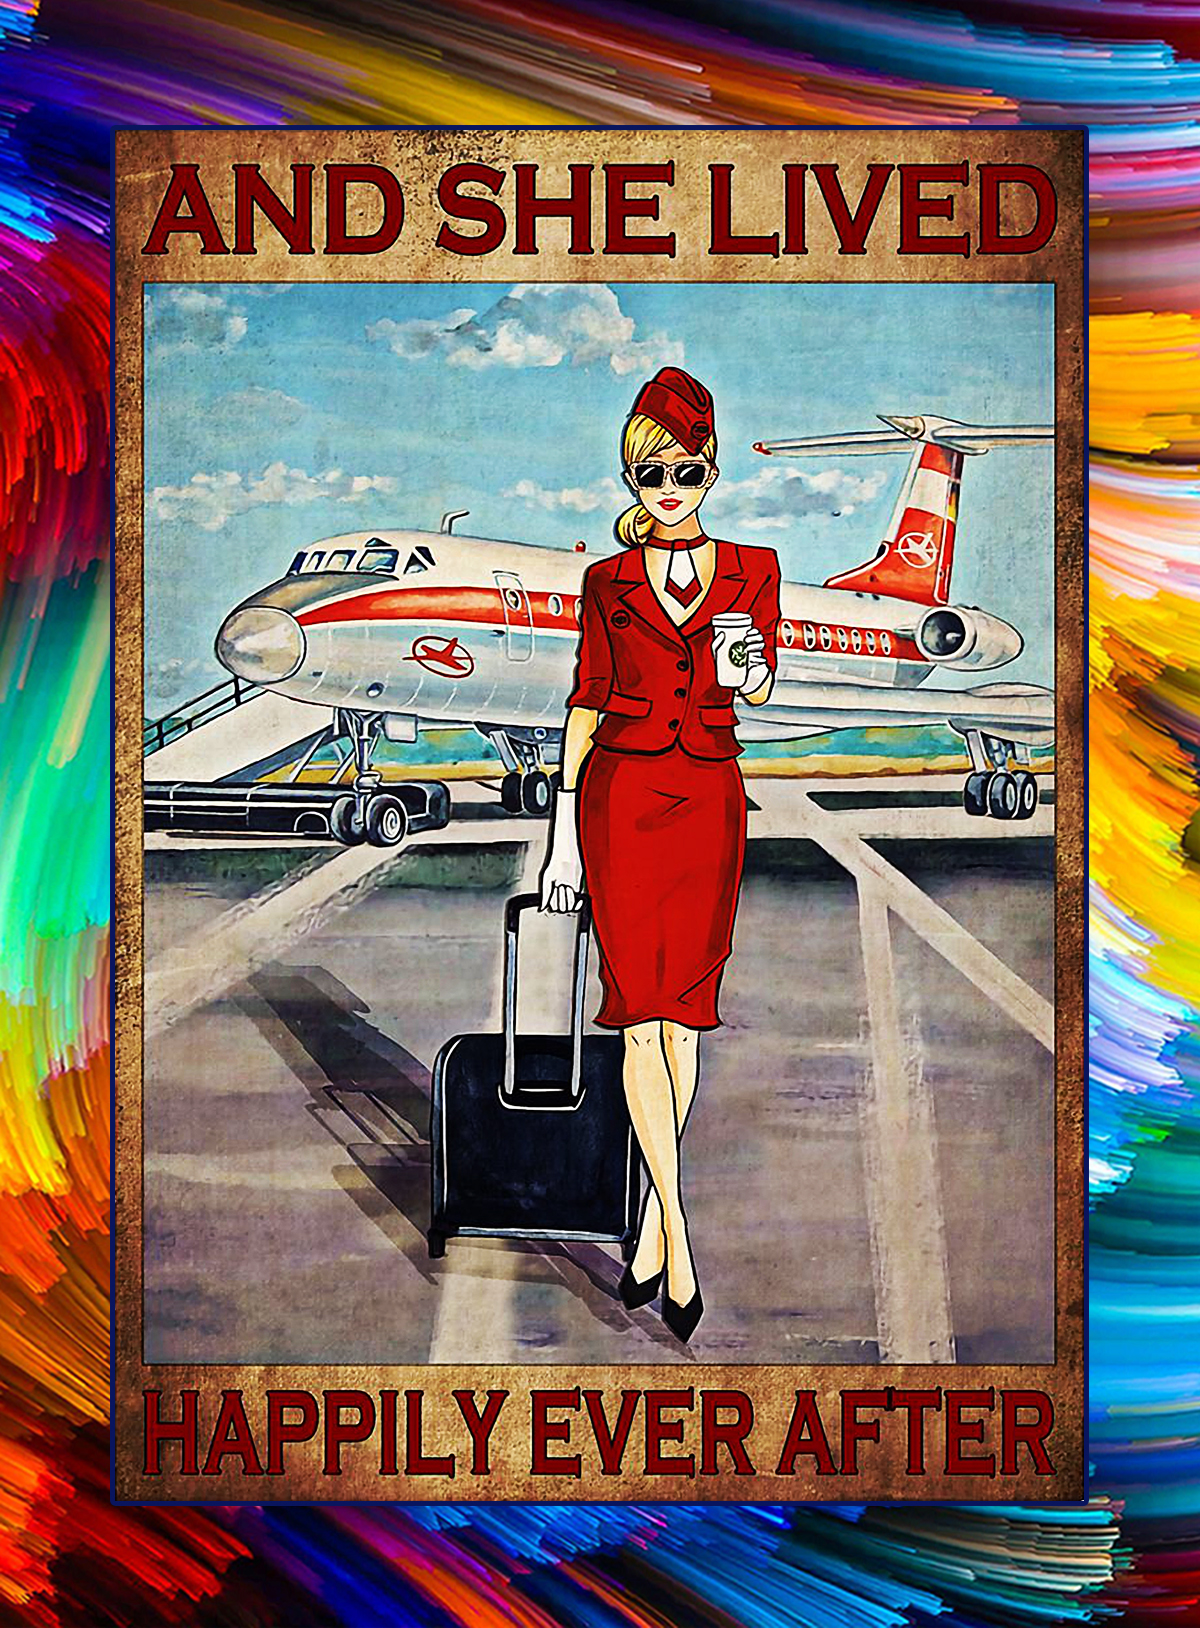 FLIGHT ATTENDANT SOME GIRLS ARE JUST BORN WITH THE SKY IN THEIR SOULS POSTER - A4